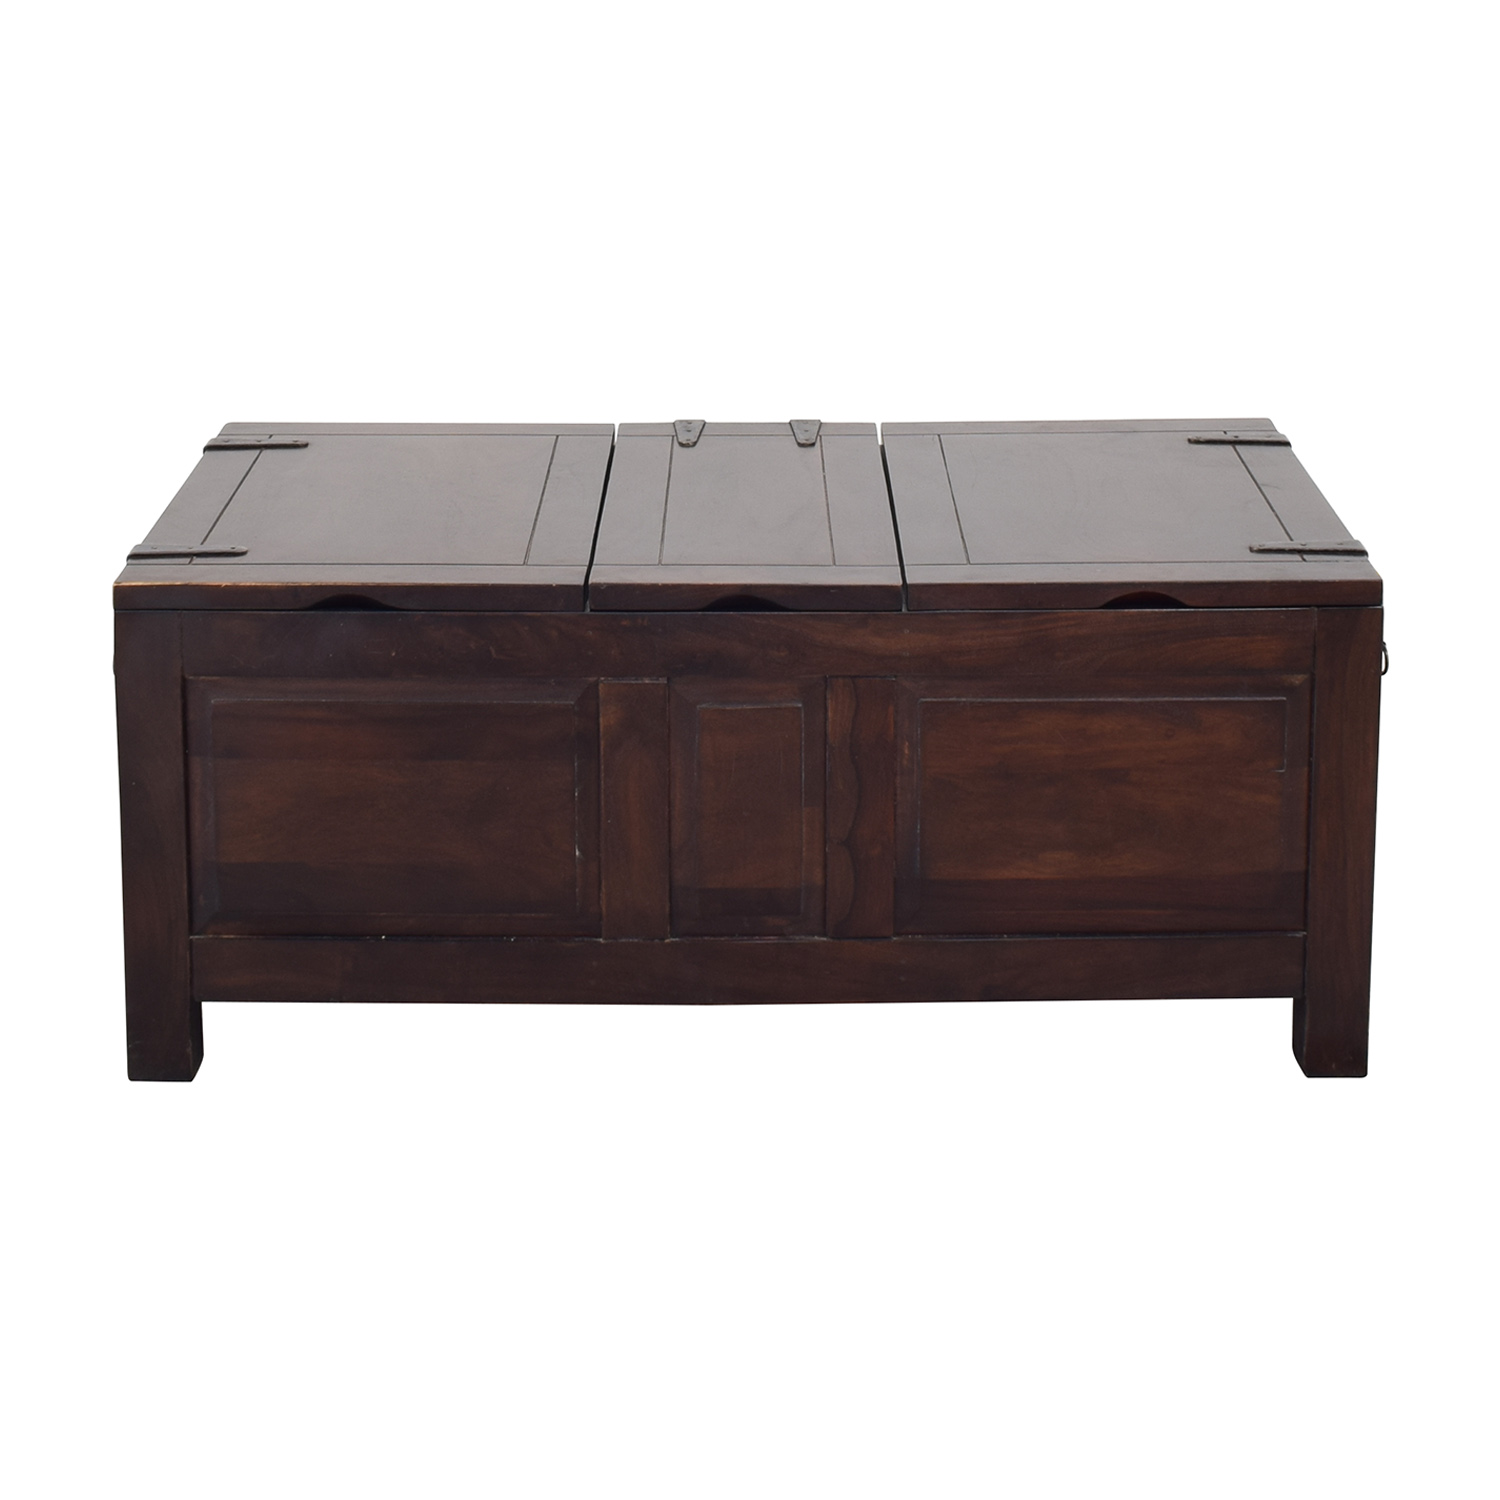 Crate & Barrel Storage Coffee Table Trunk sale